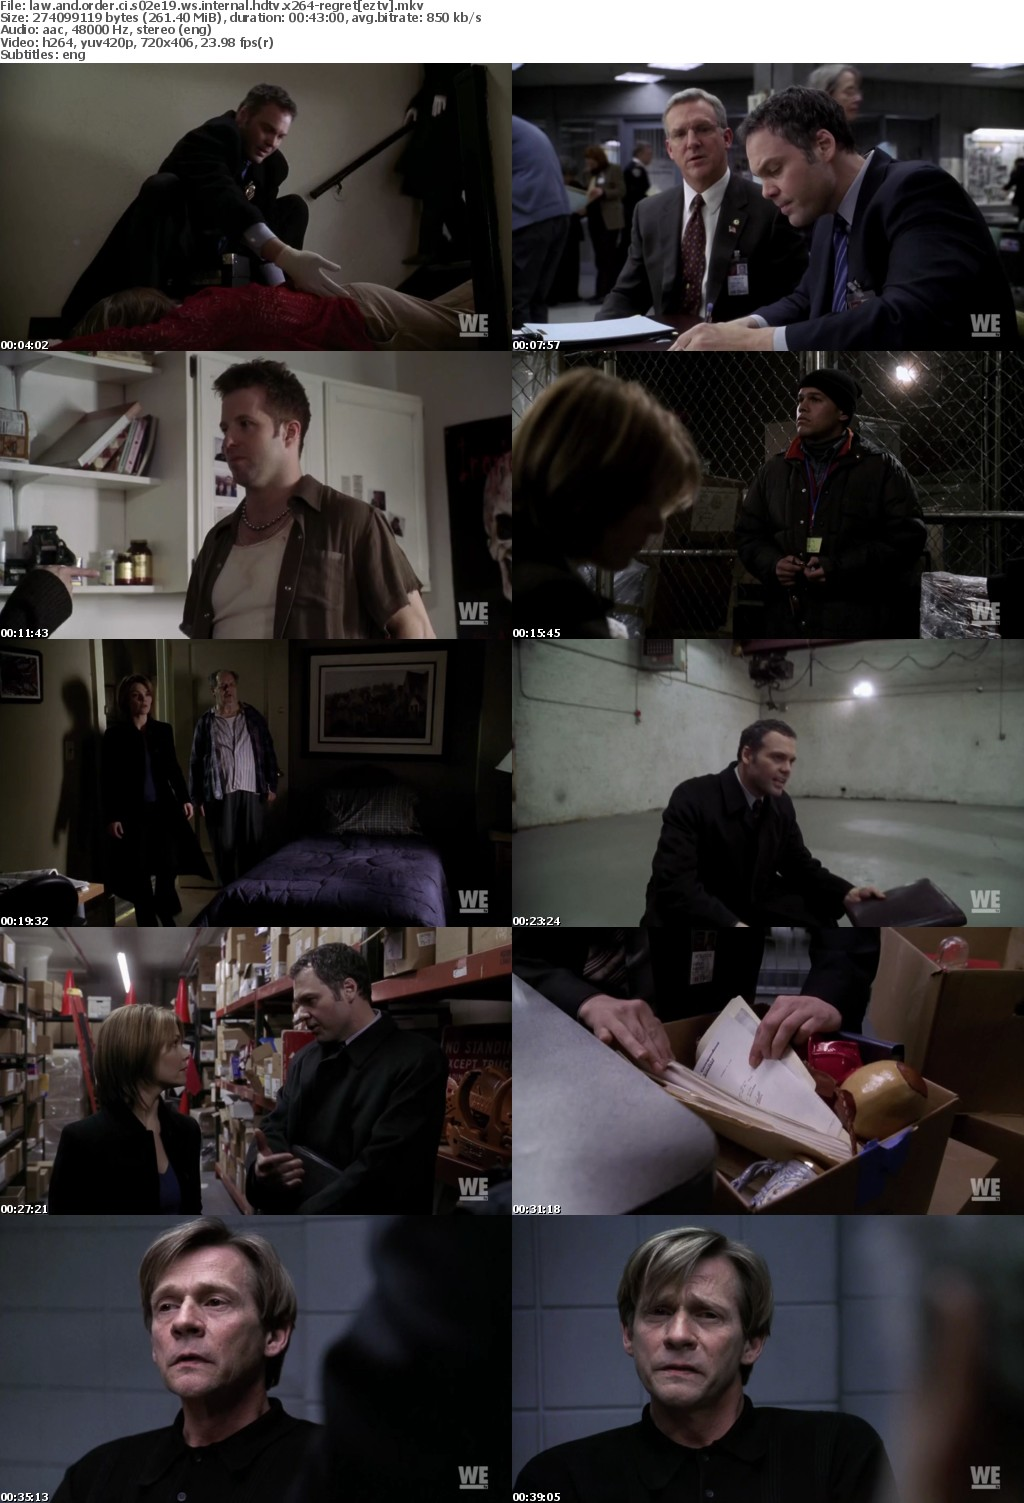 Law and Order CI S02E19 WS iNTERNAL HDTV x264-REGRET